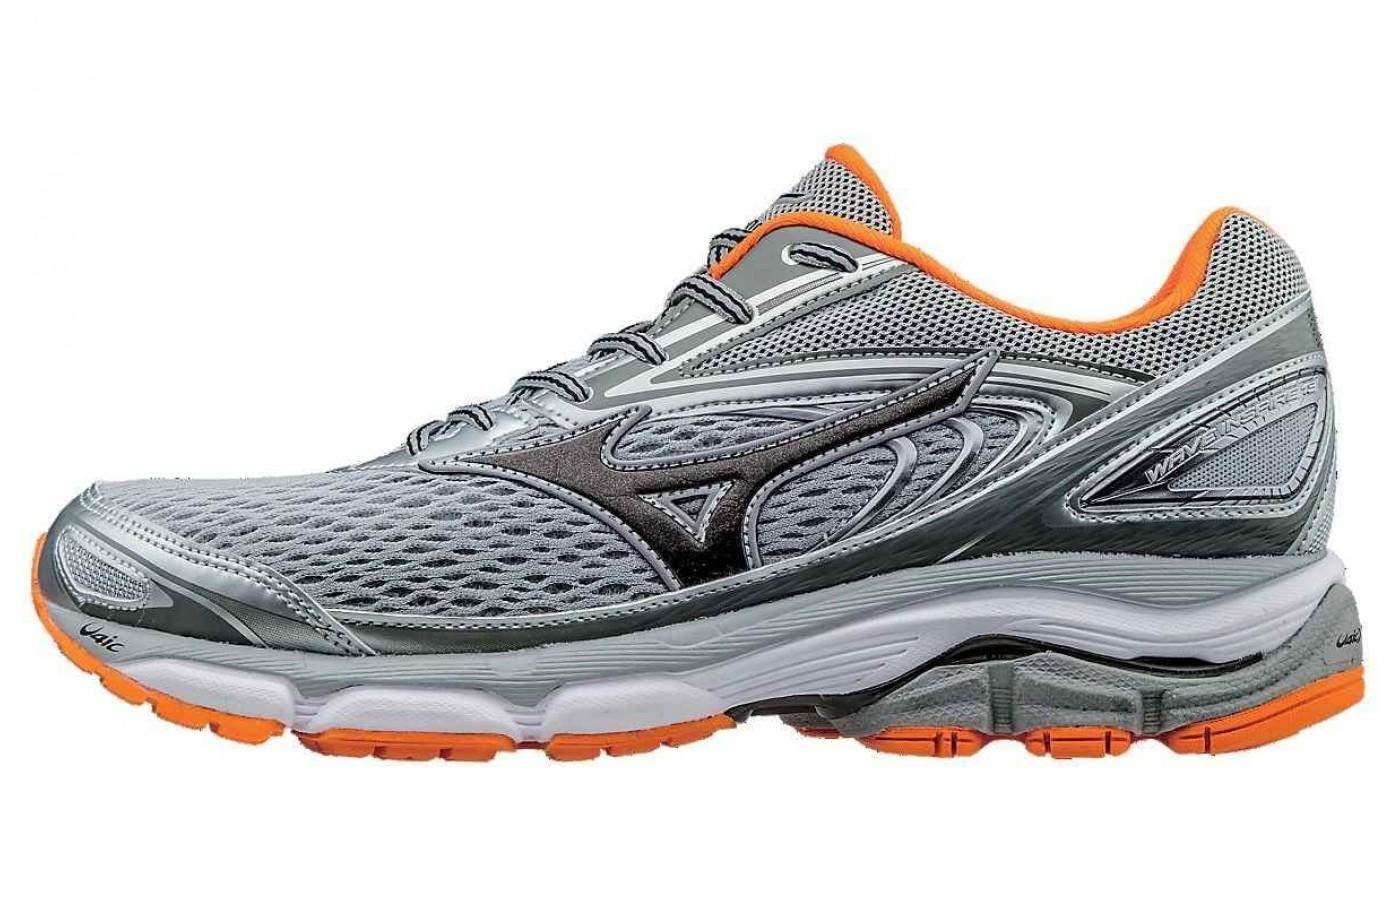 Mizuno Wave Inspire 13 in orange accented colorway